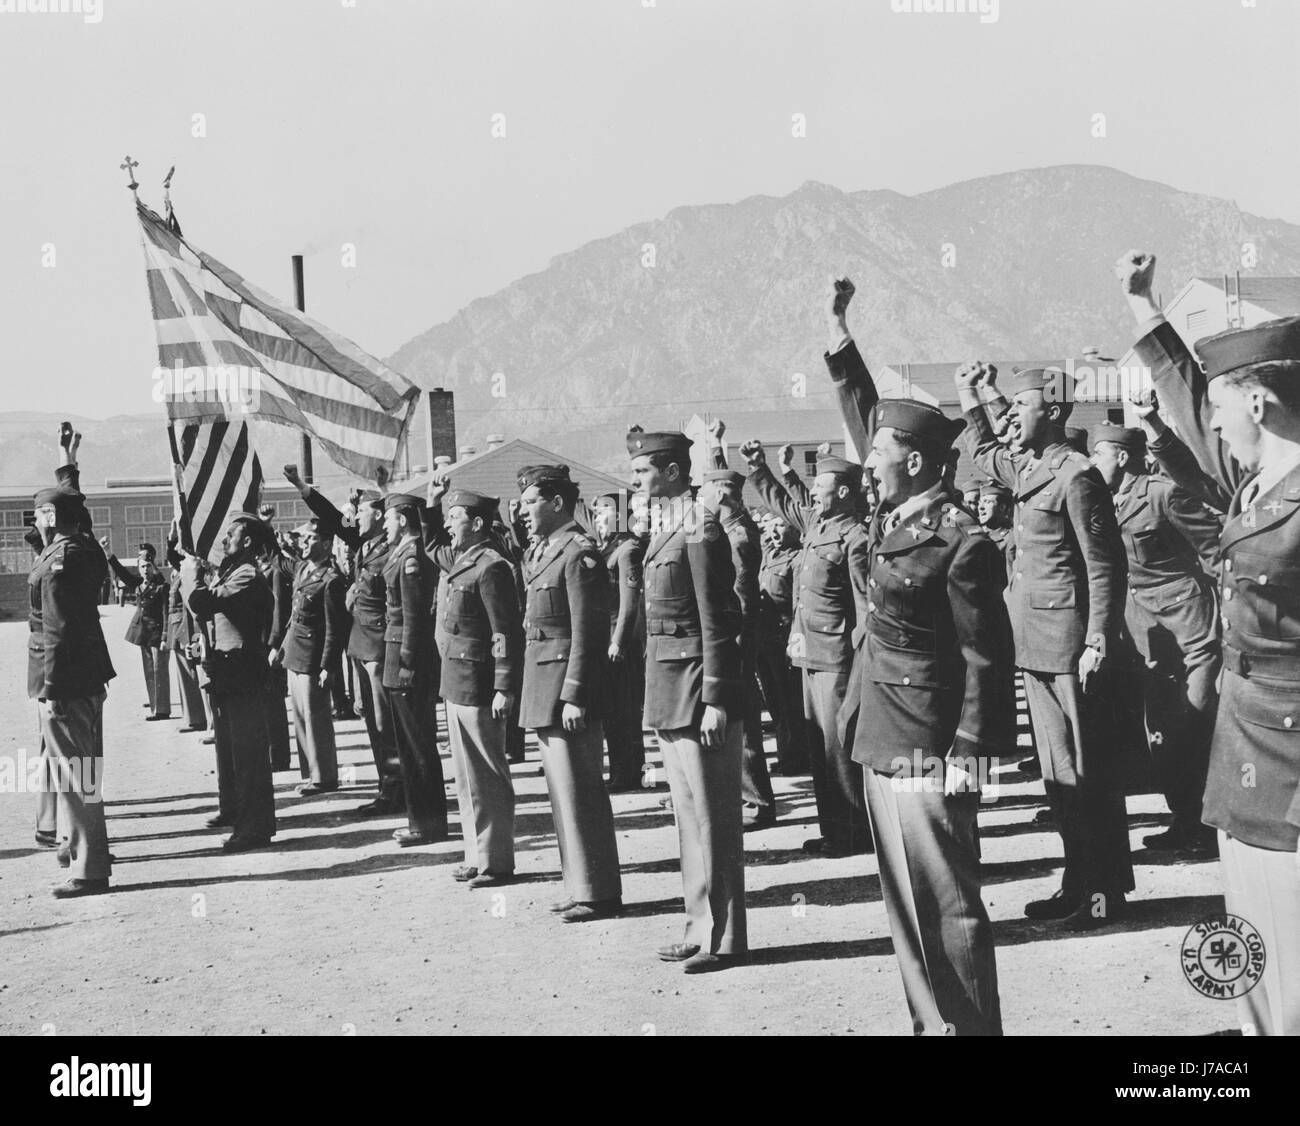 Greeks of the 122 Infantry battalion vow to avenge the invasion of their land, circa 1943. - Stock Image